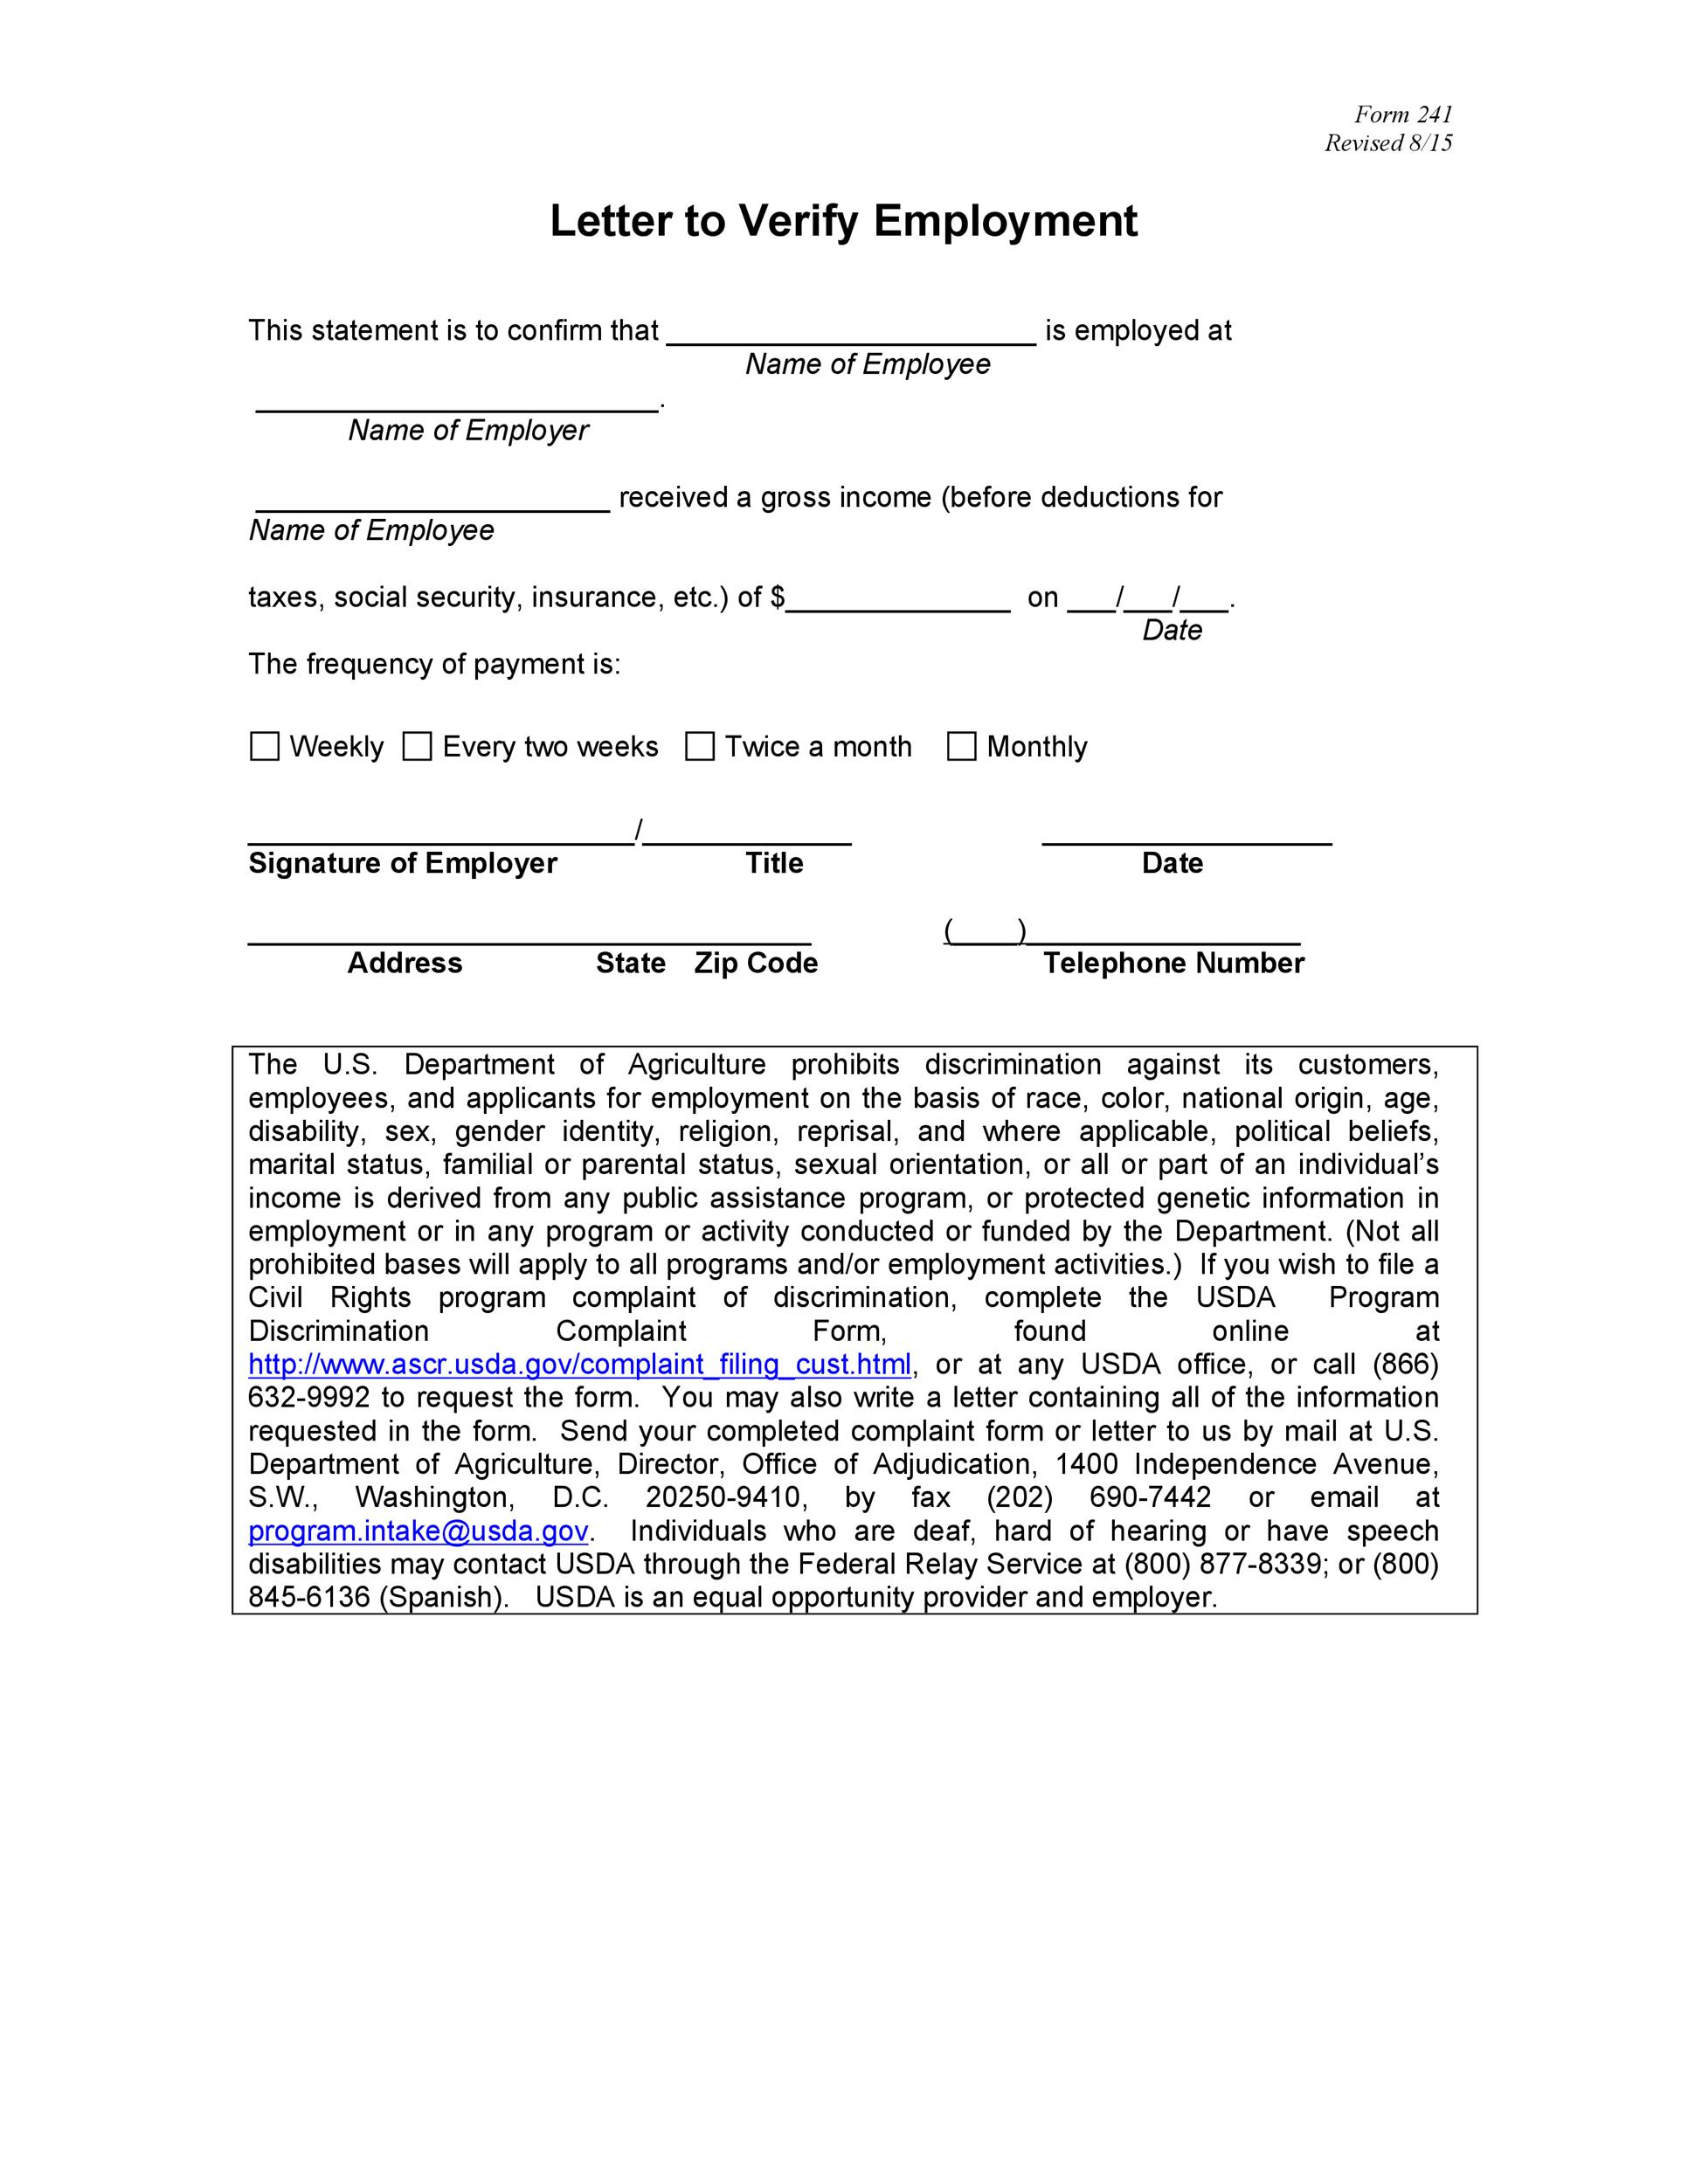 proof of employment letter template 07 - Verification Of Employment Sample Letter